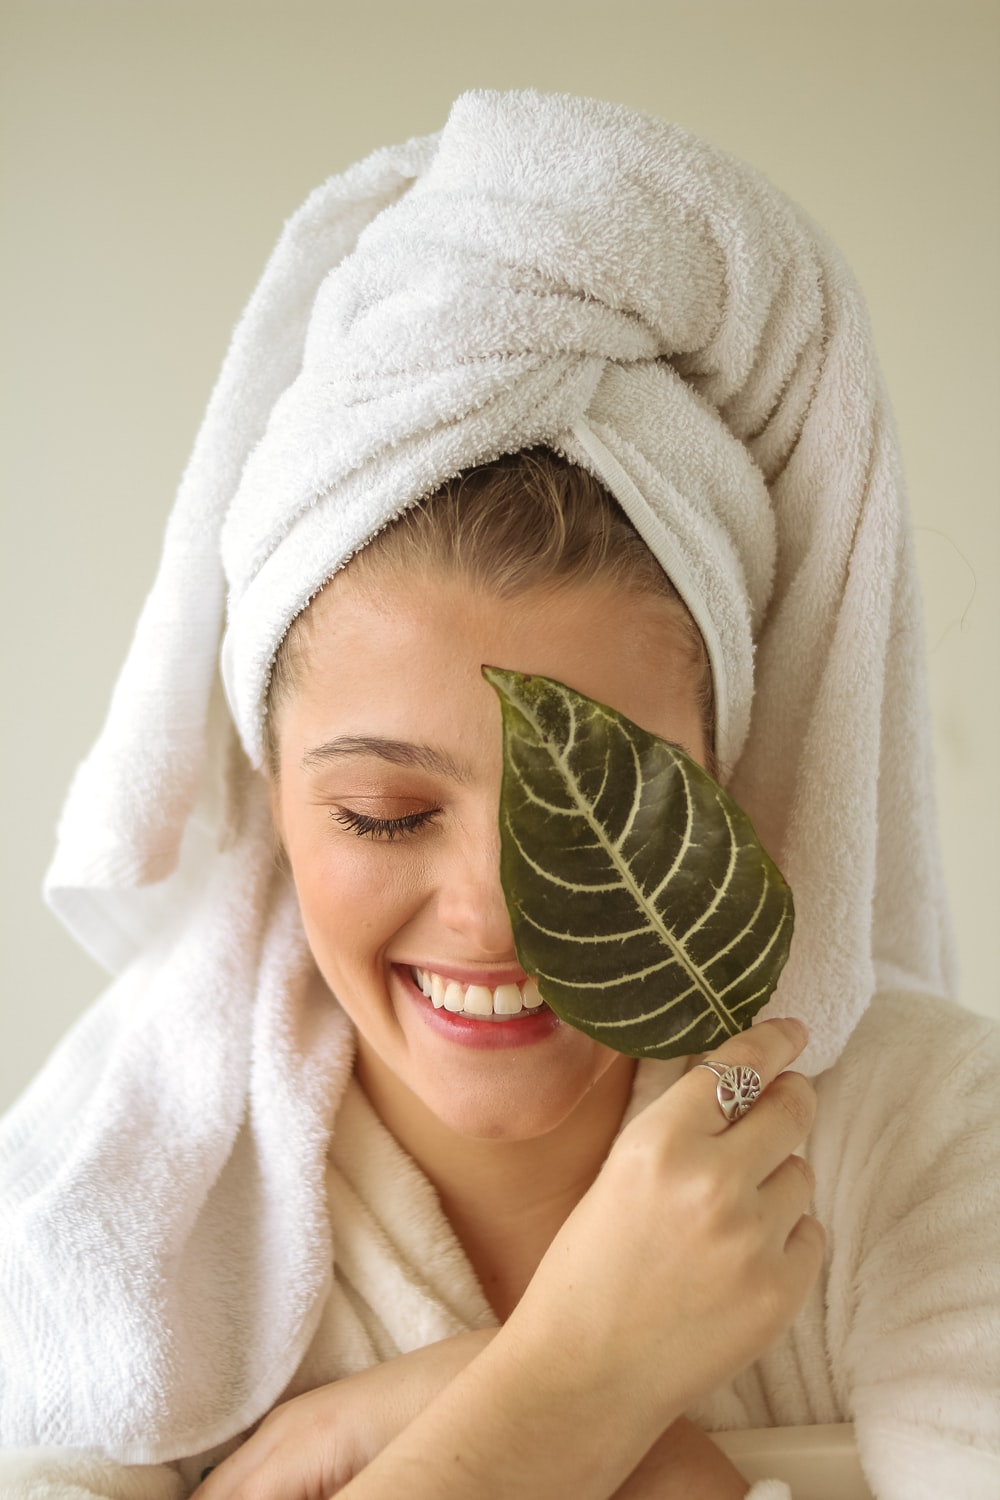 woman covering her face with white towel